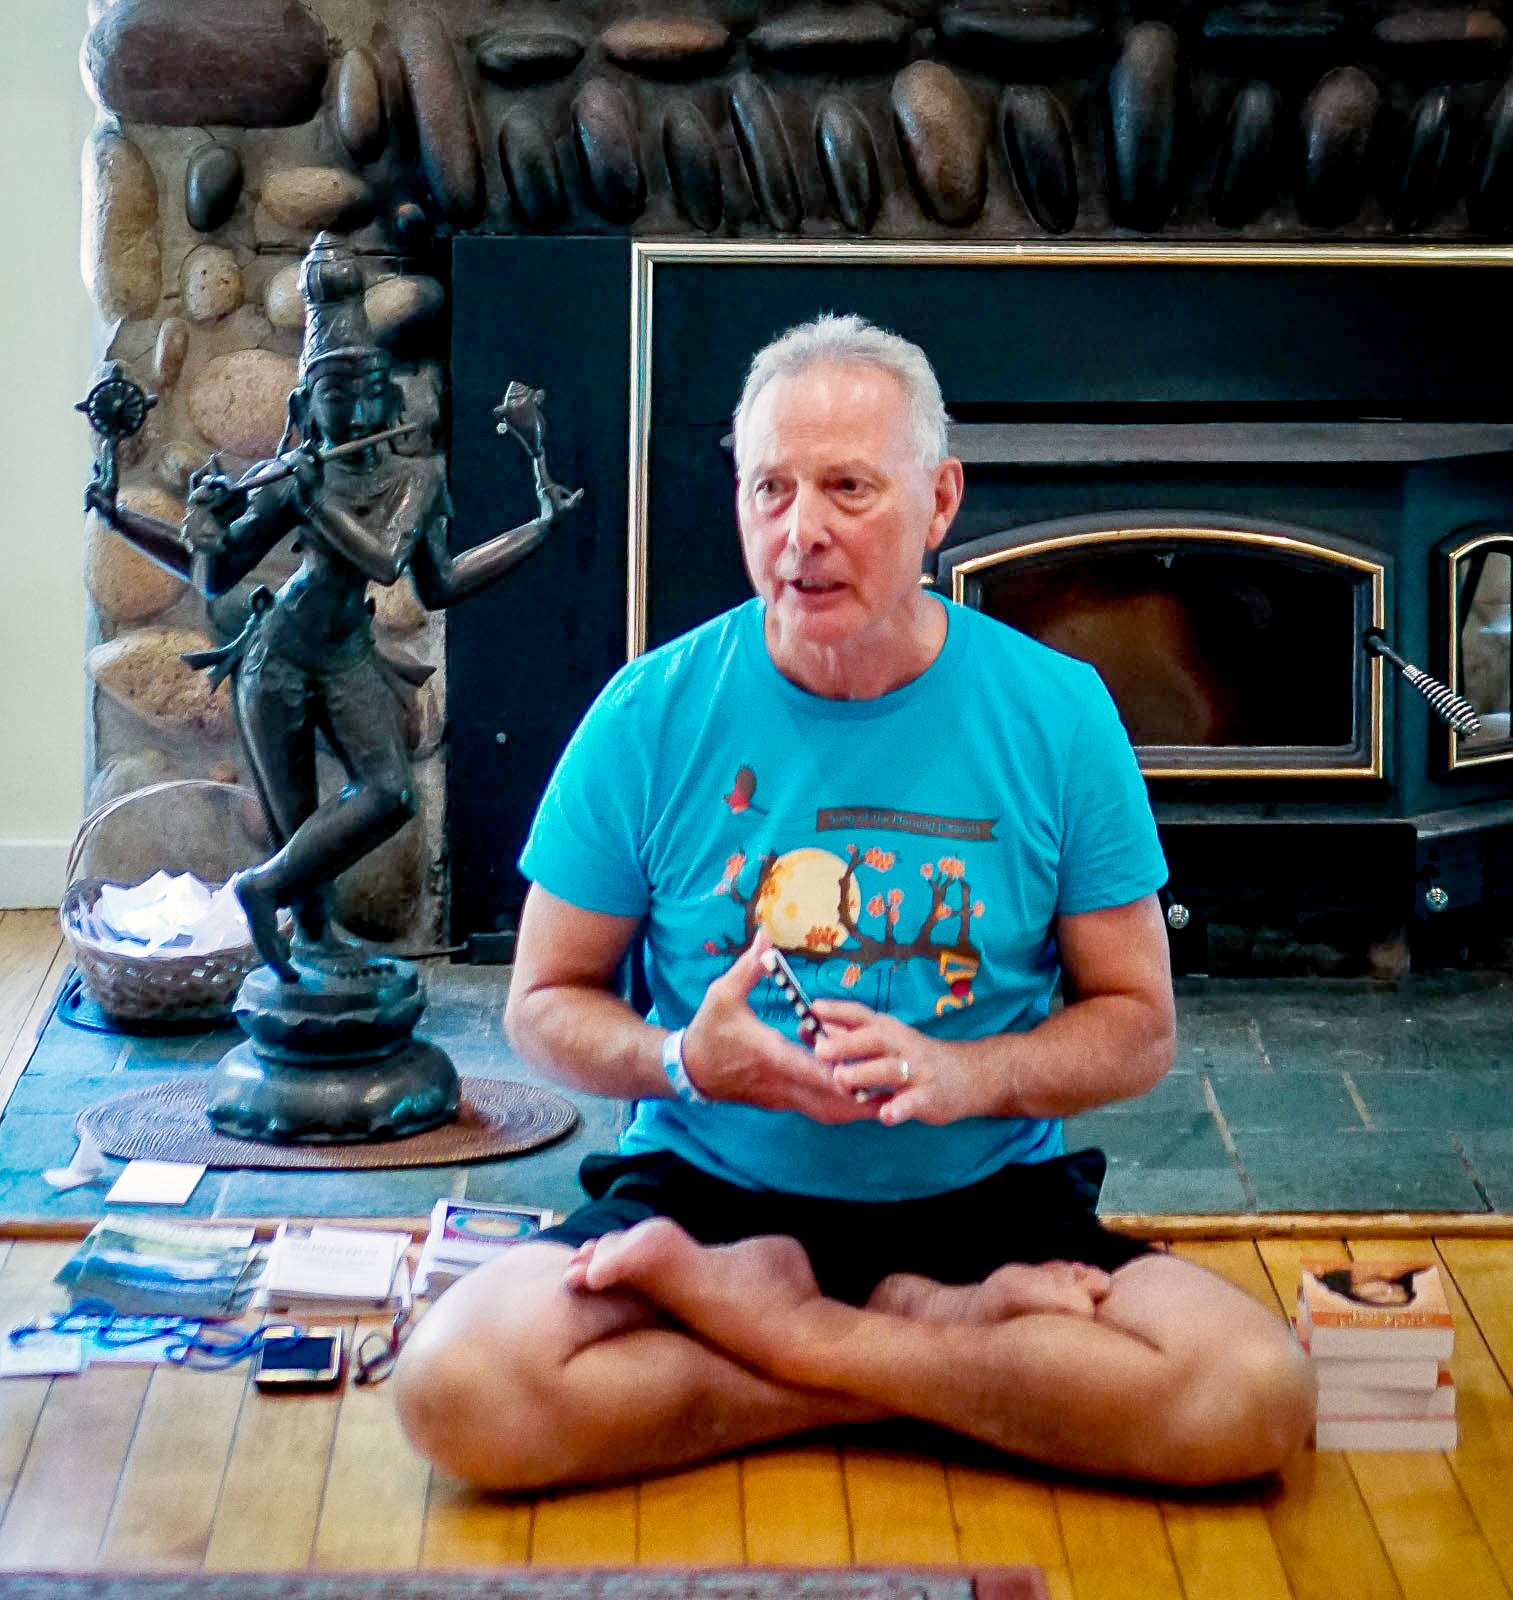 Roy Thibodeau, a longtime member of the Song of the Morning community, leads a meditation program in the Lodge during YogaFest 2017.